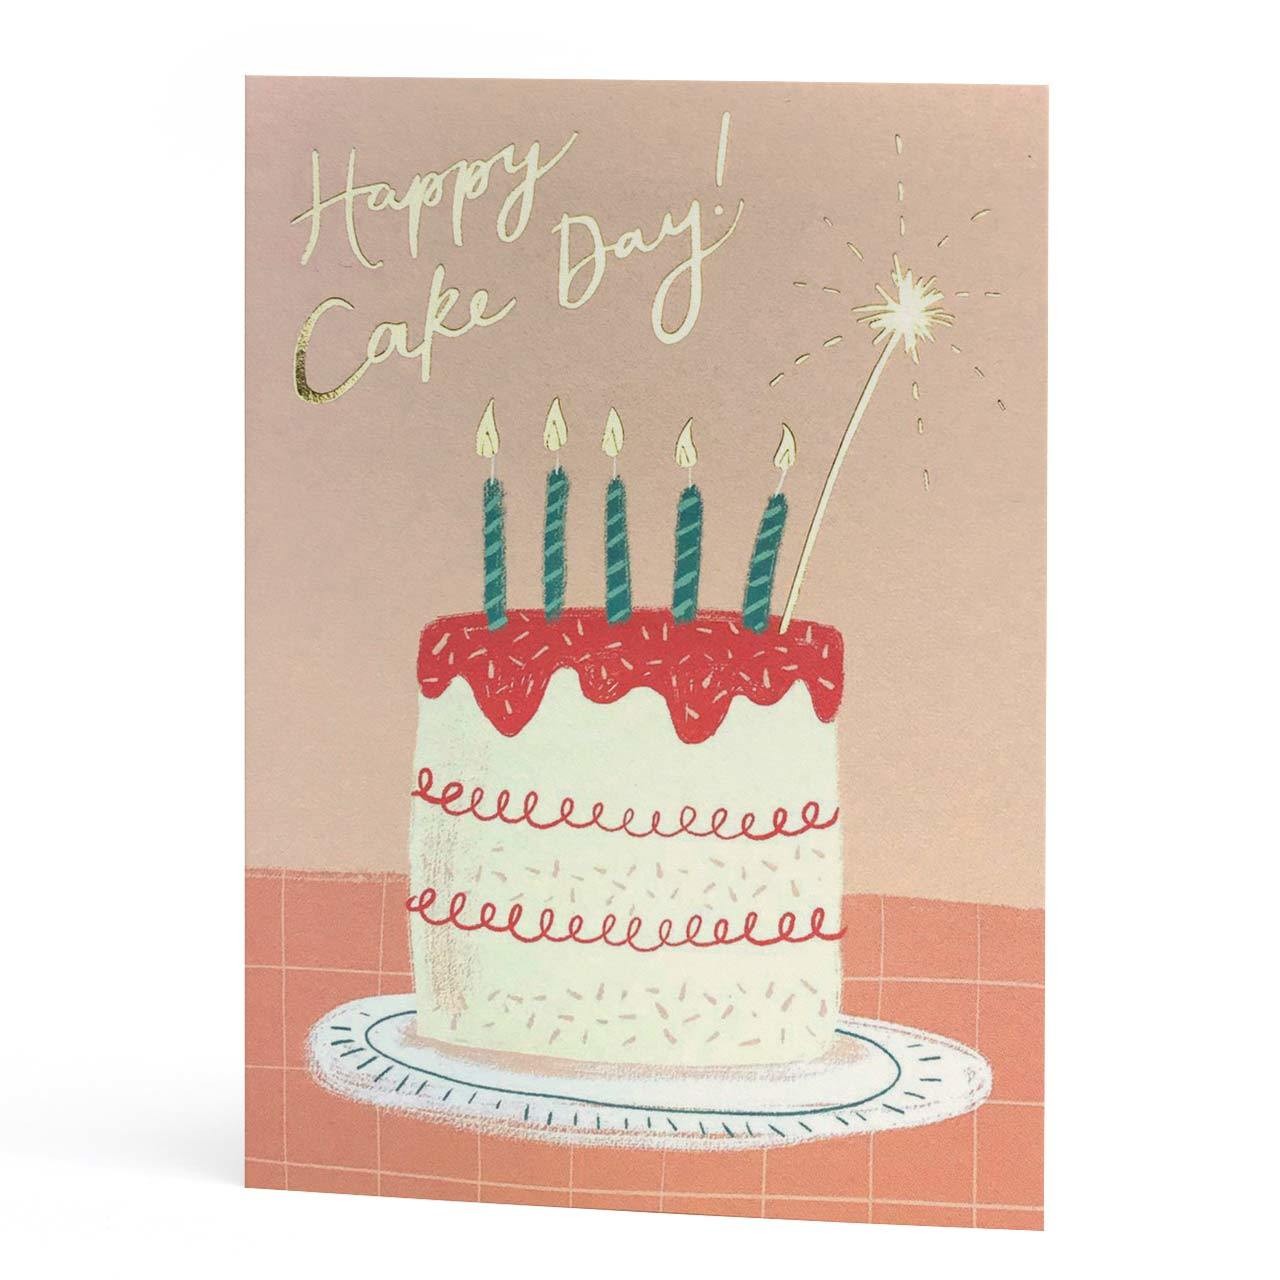 Happy Cake Day Gold Foil Birthday Card